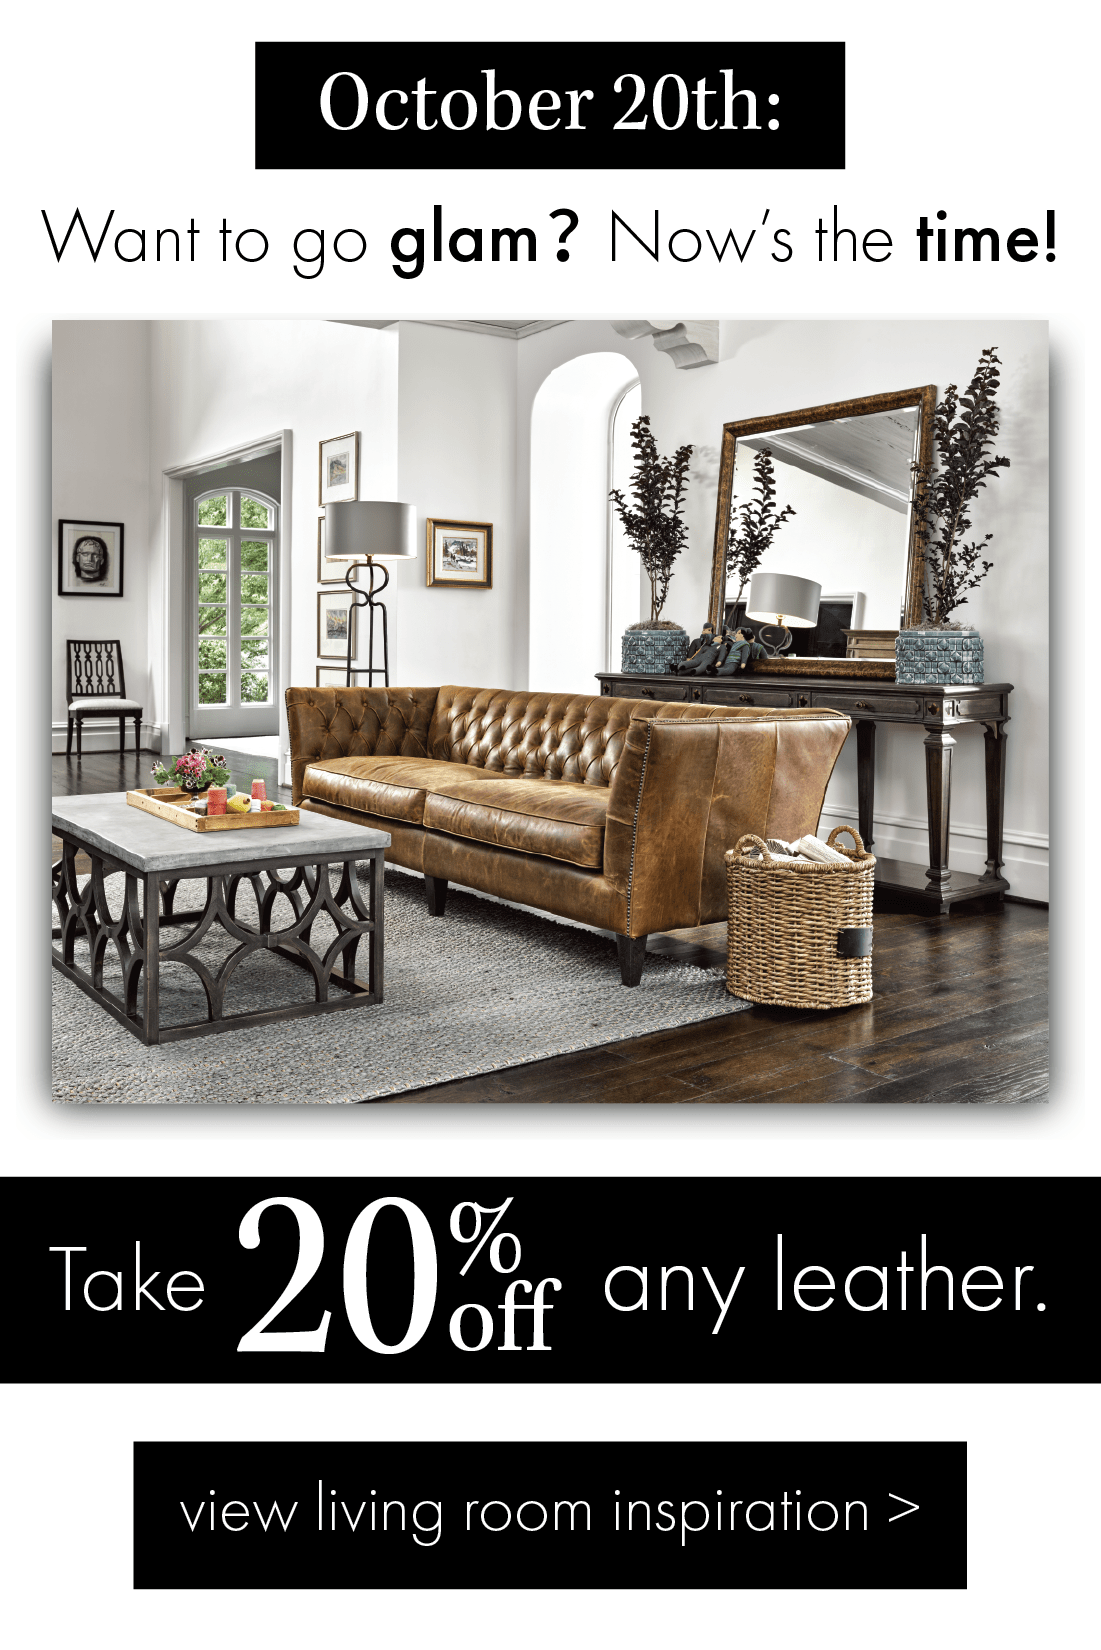 20% off Leather October 20, 2019 at Stash Home